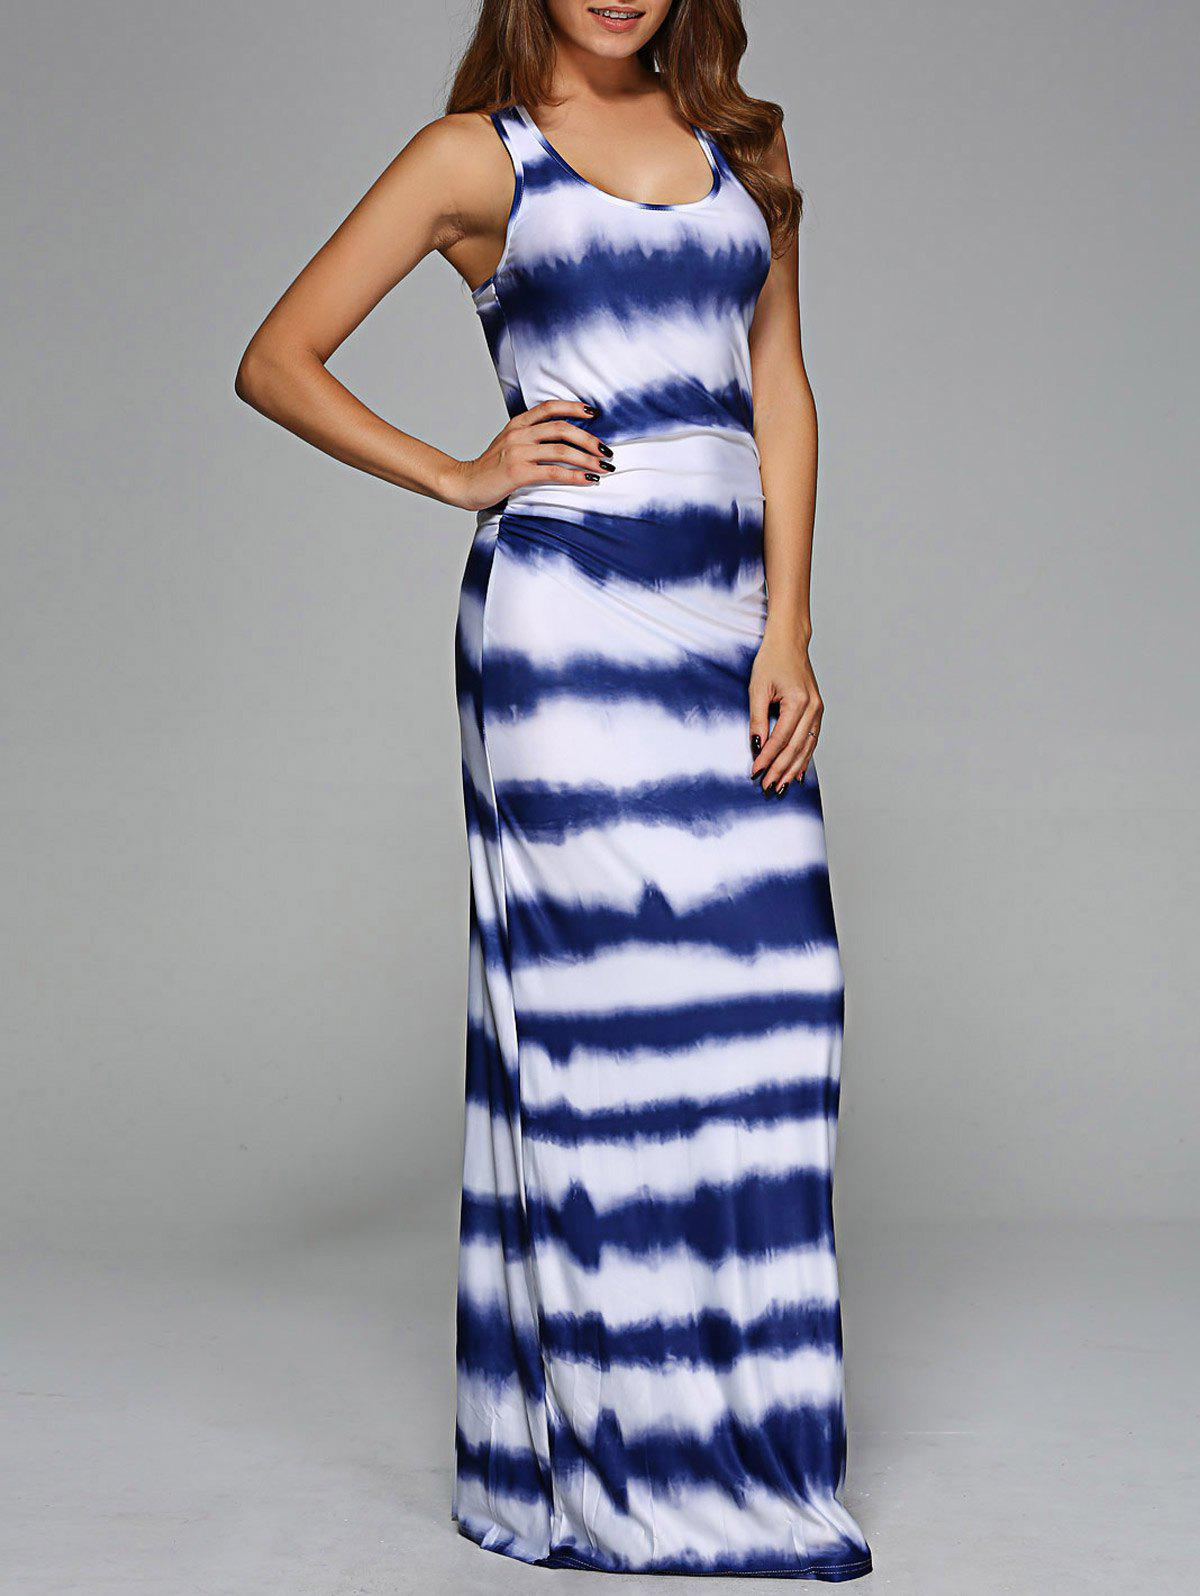 Scoop Neck Tie-Dye Maxi DressWomen<br><br><br>Size: L<br>Color: COLORMIX